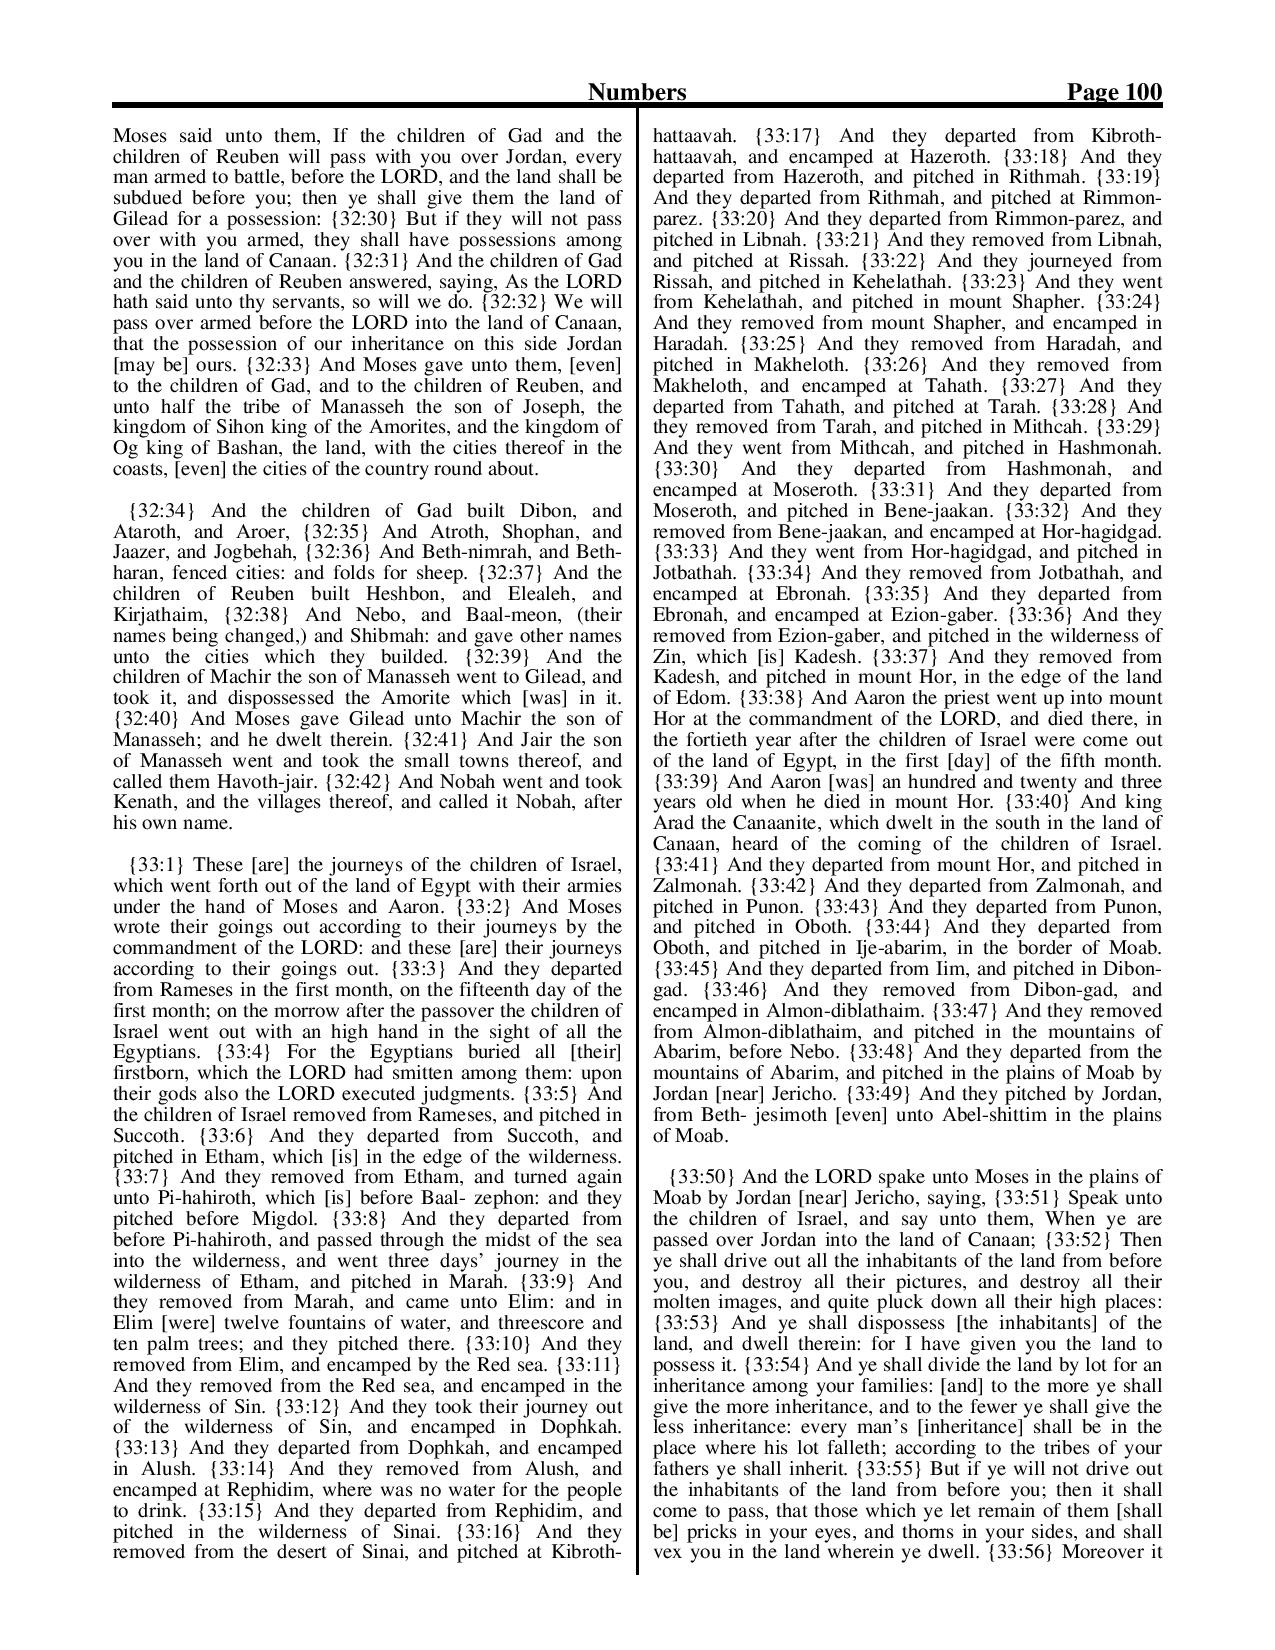 King-James-Bible-KJV-Bible-PDF-page-121